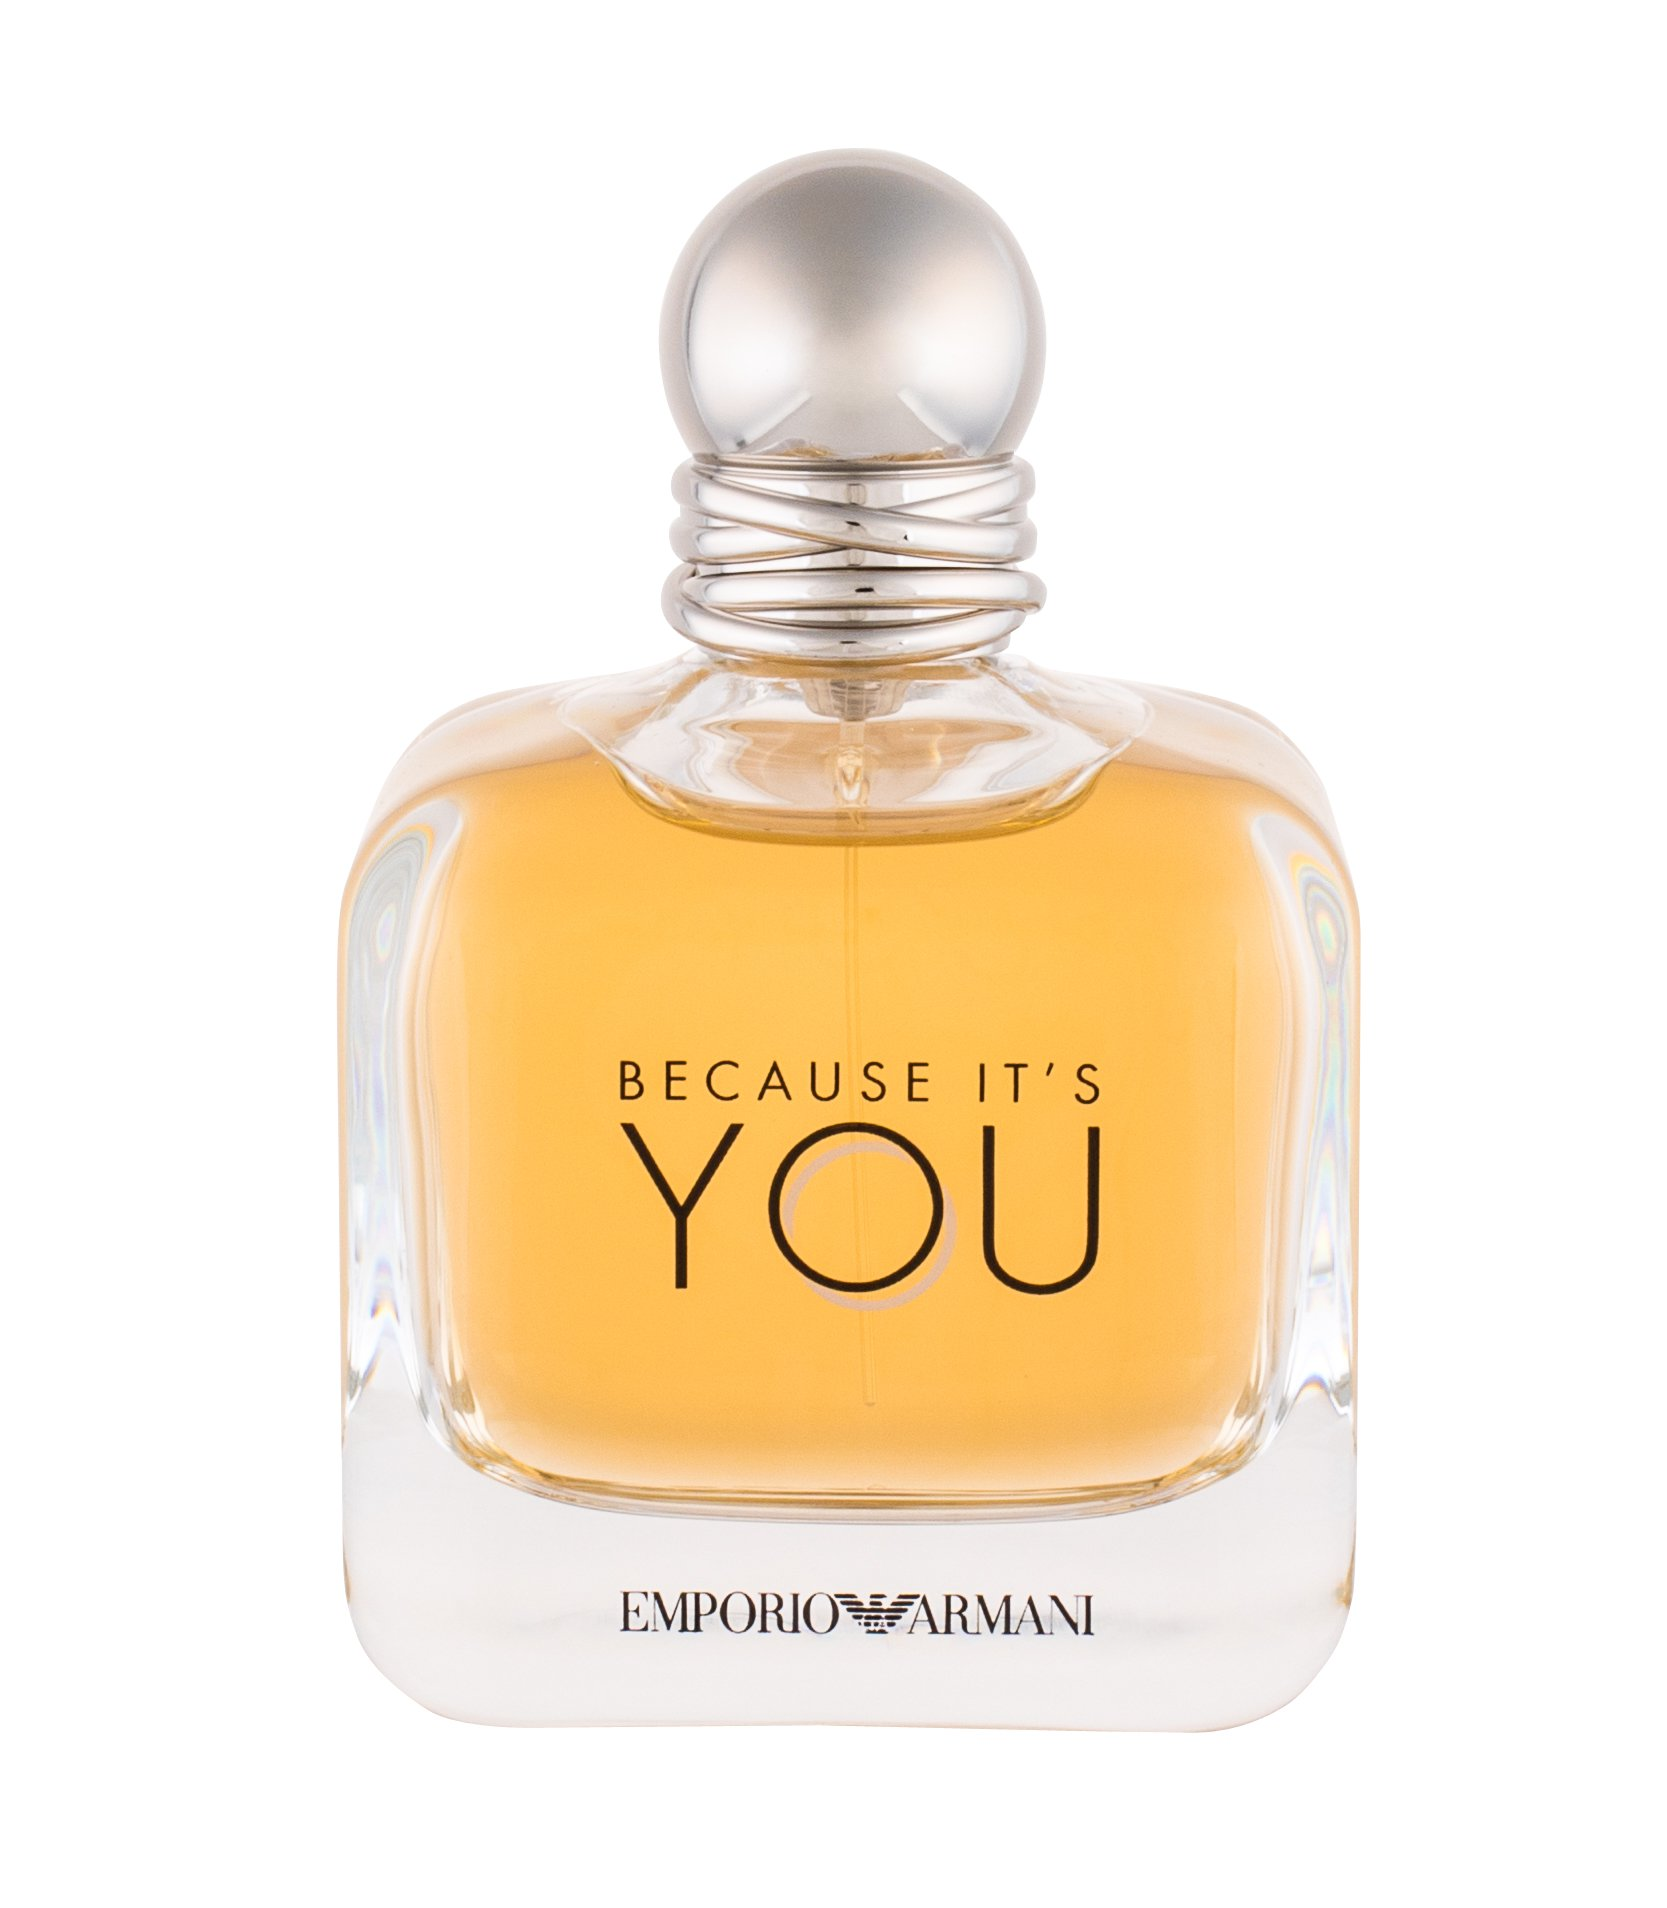 Giorgio Armani Emporio Armani Because It´s You, Parfumovaná voda 100ml